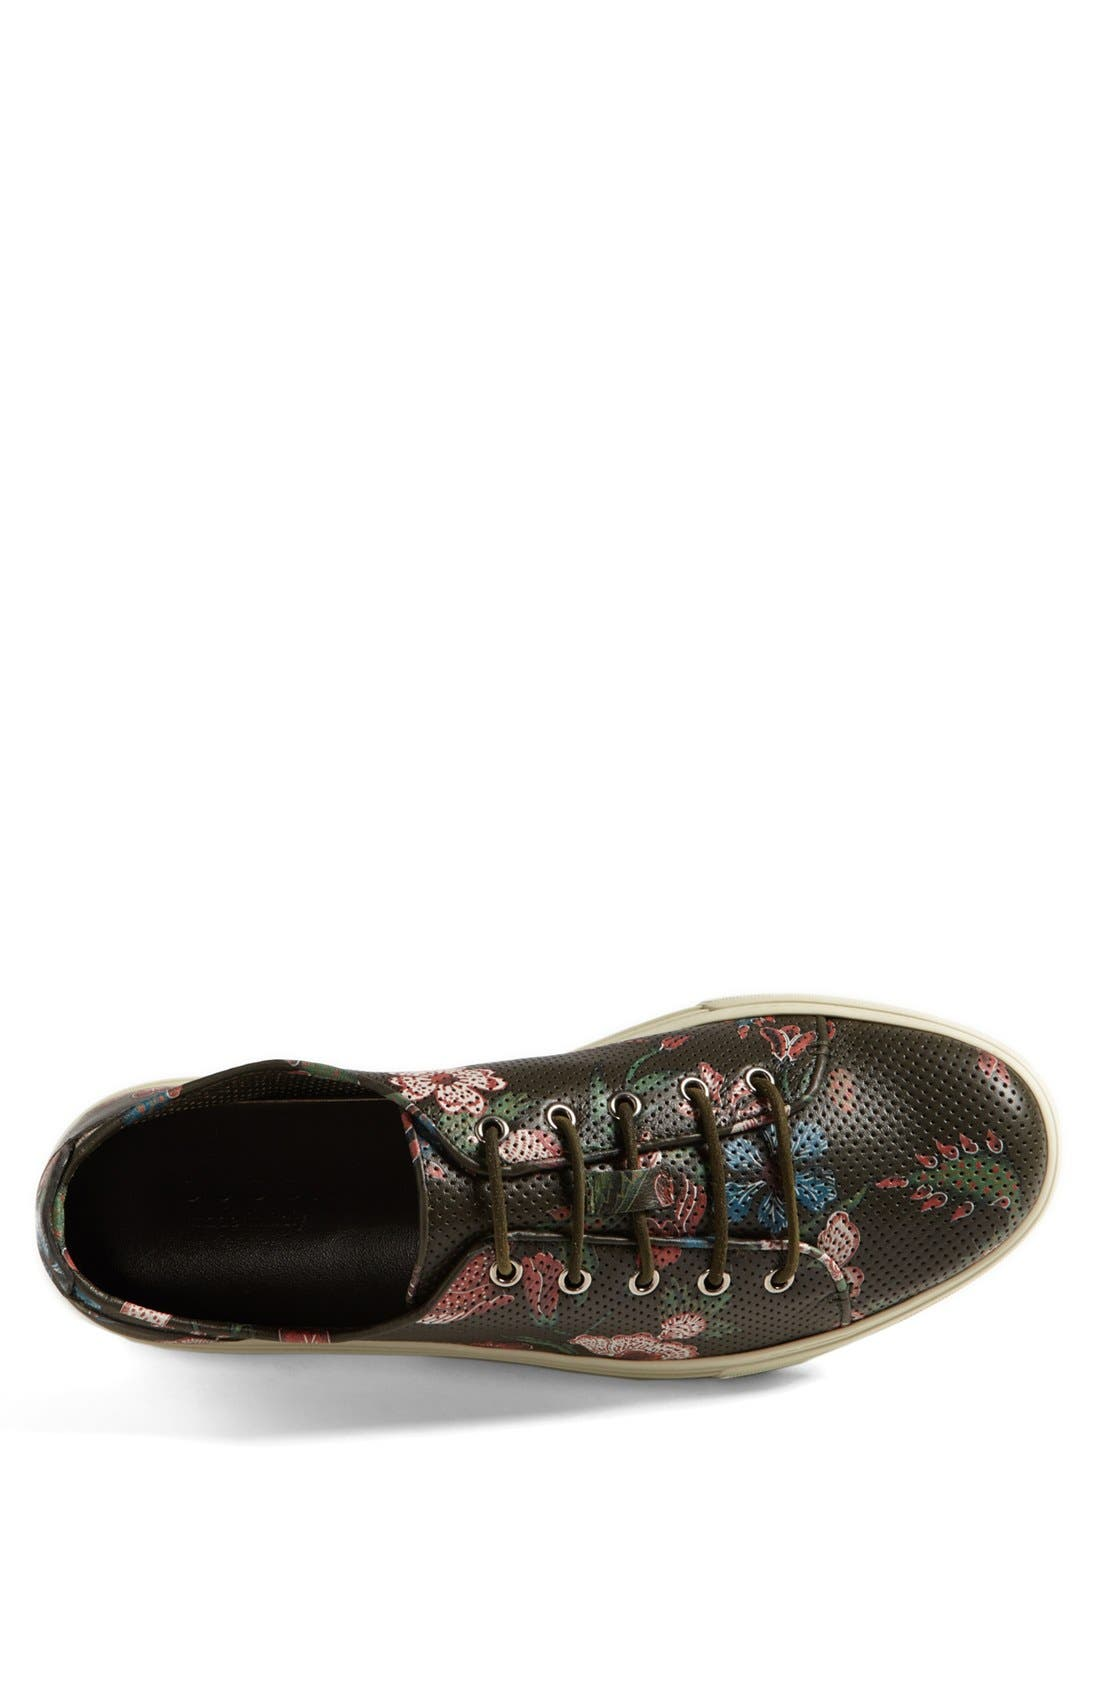 Alternate Image 3  - Gucci 'Jimy' Print Low Sneaker